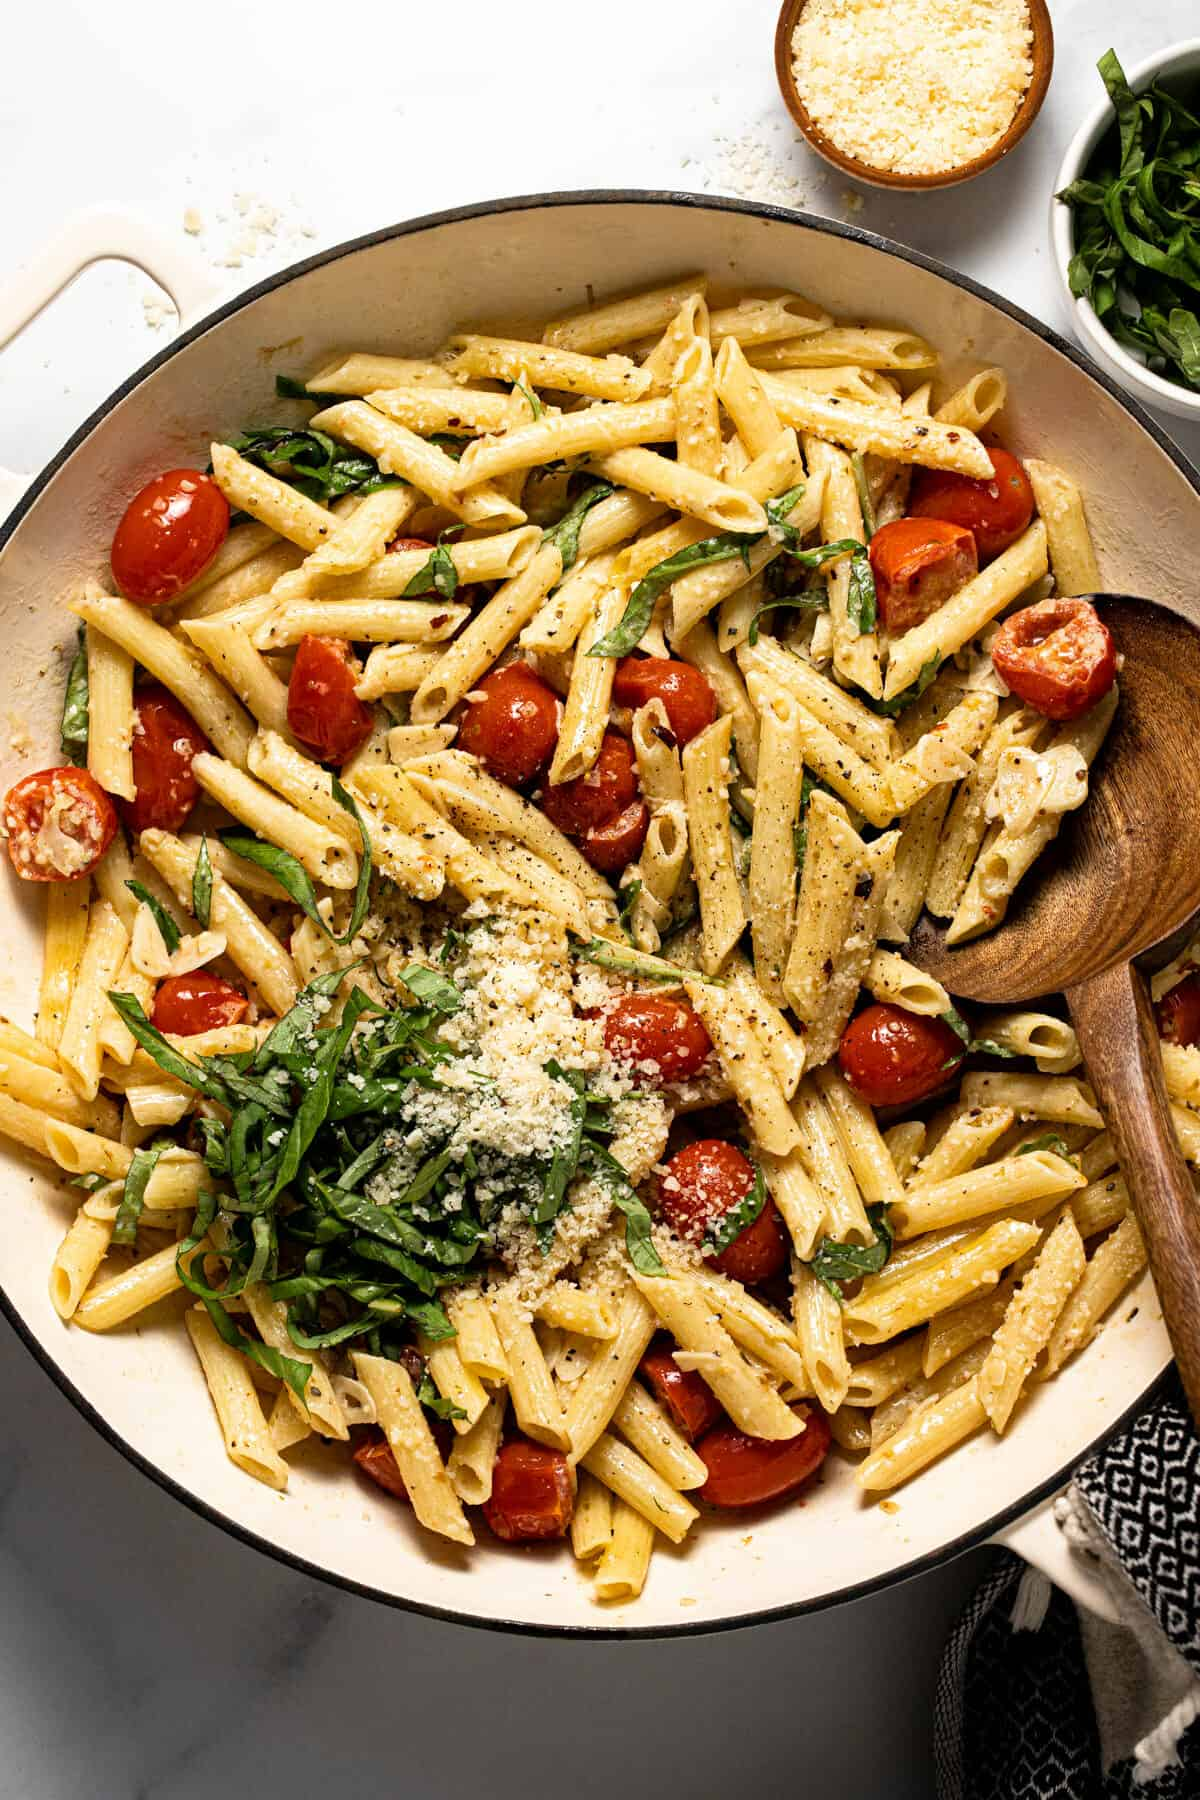 Large white pan filled with pasta with tomatoes and garlic white wine sauce